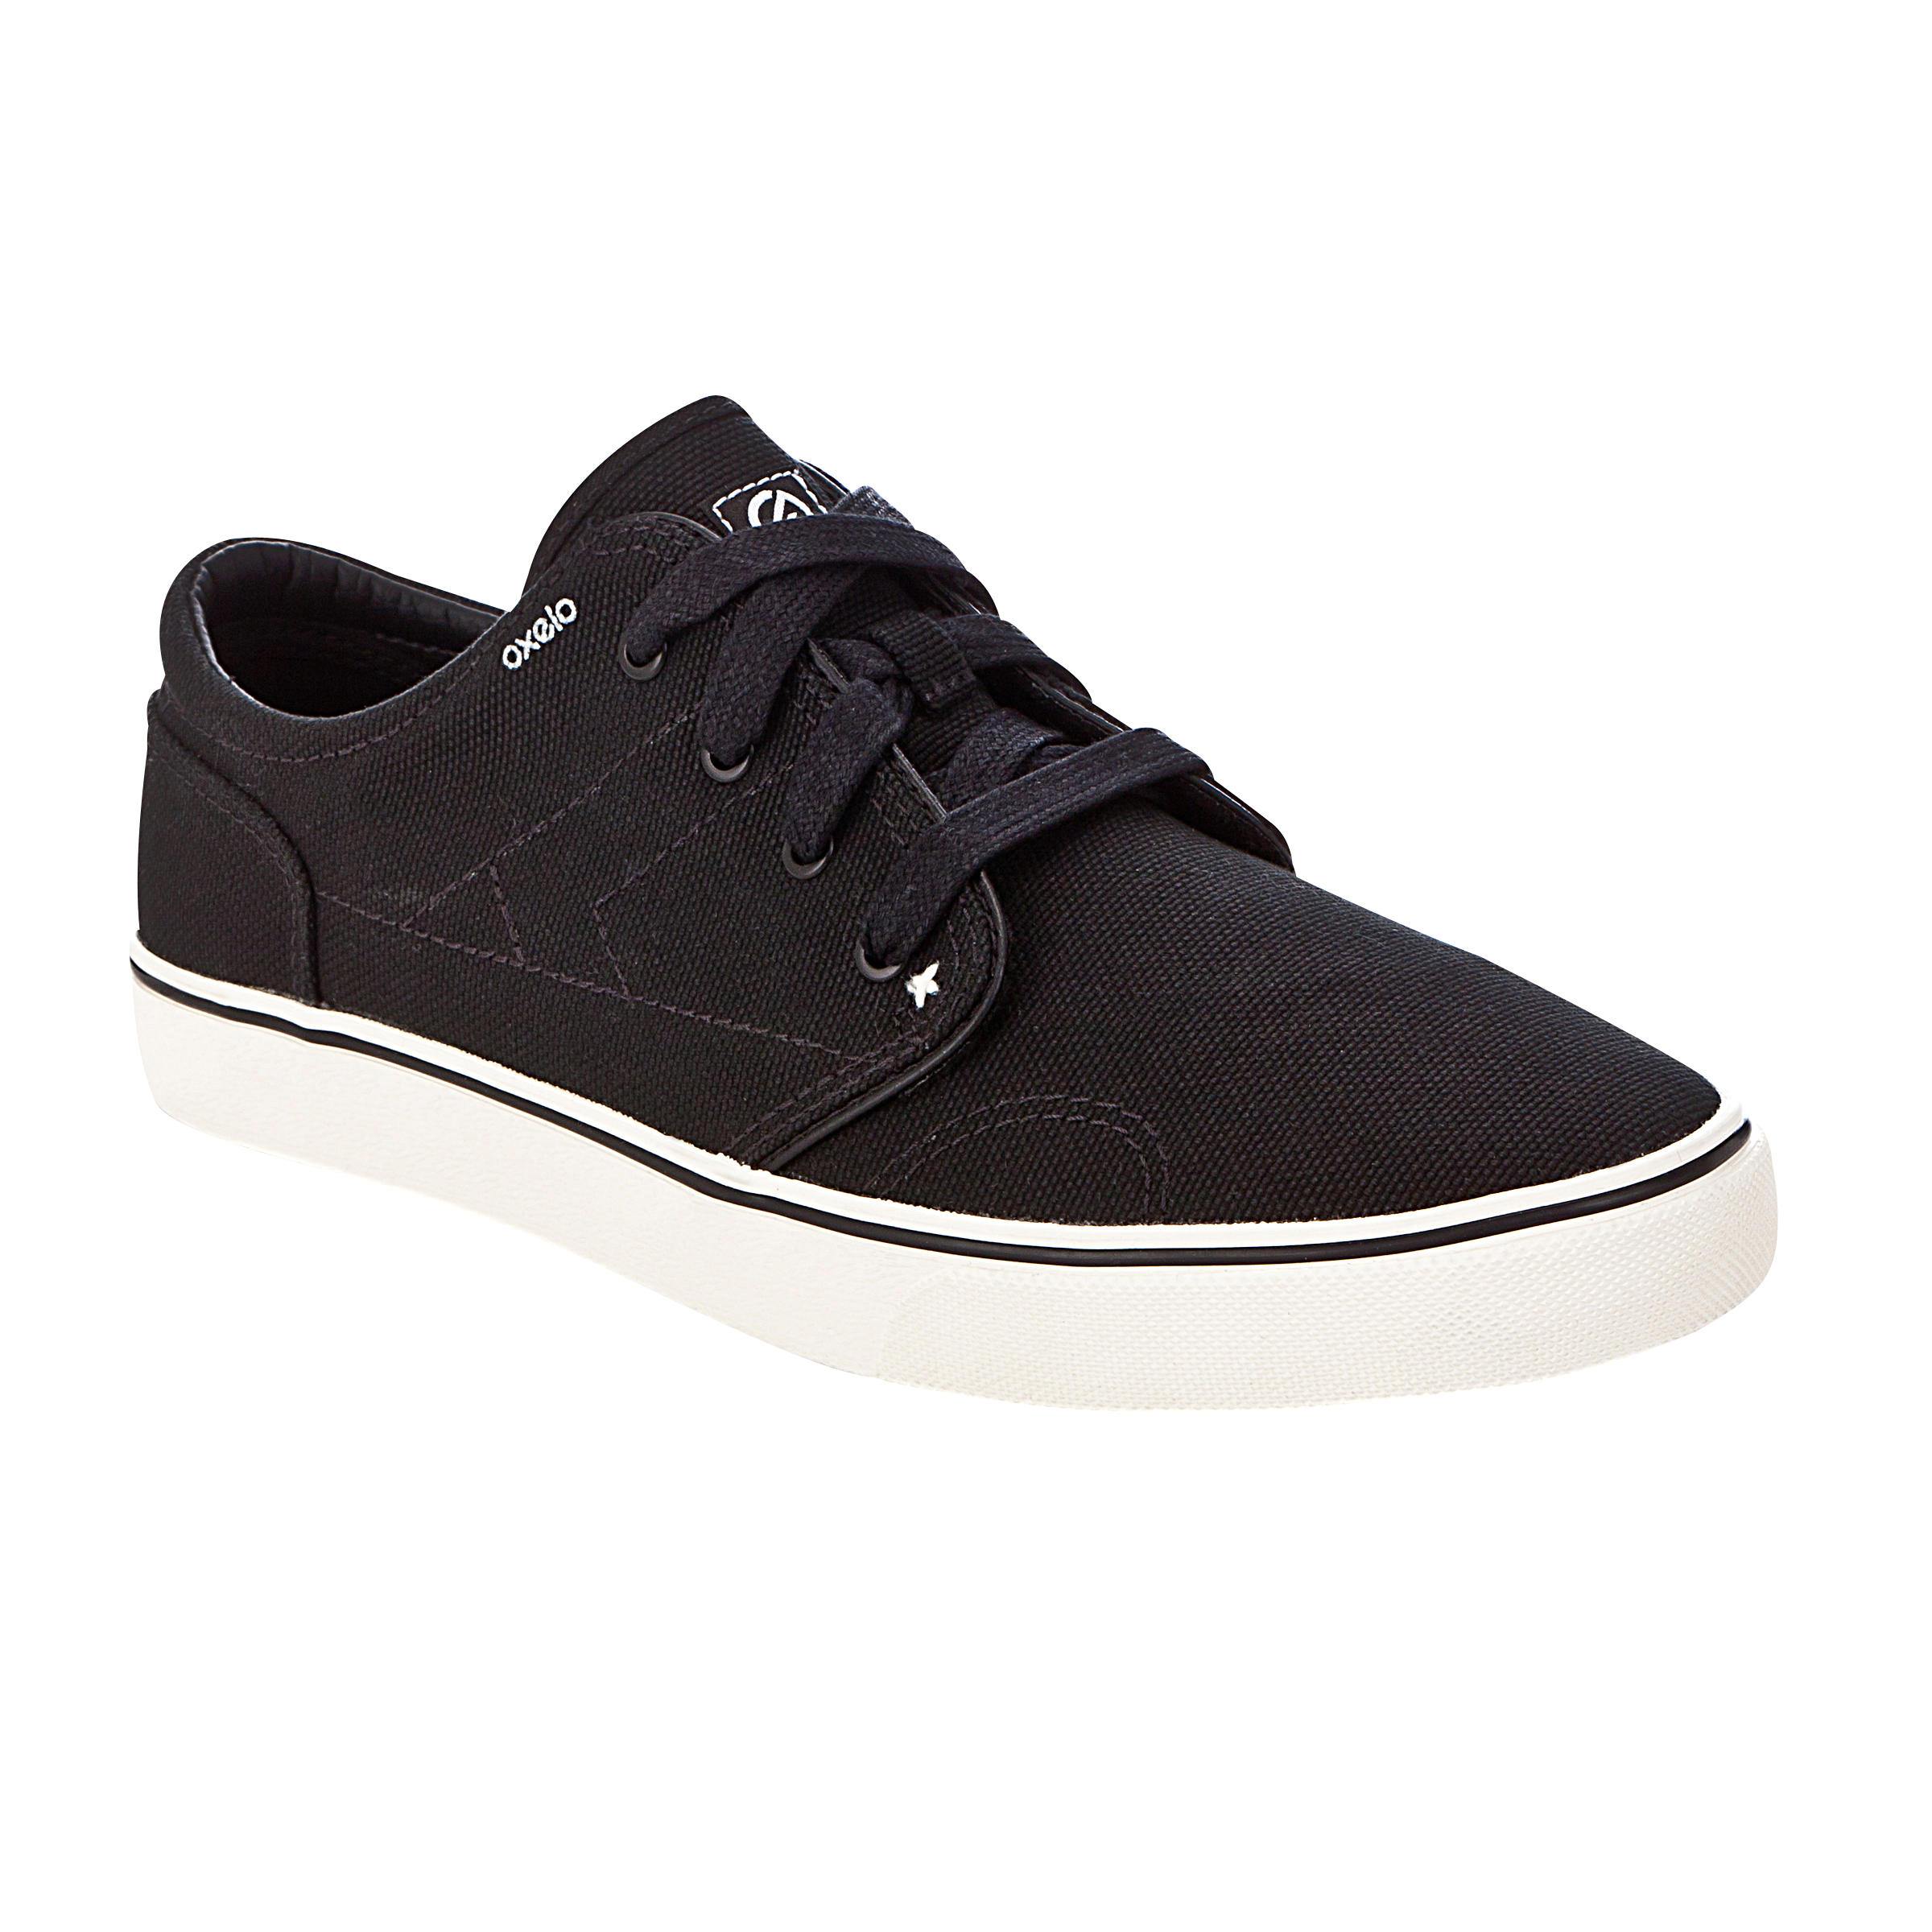 Vulca Canvas L Adult Skateboard Longboard Low-Rise Shoes - Black